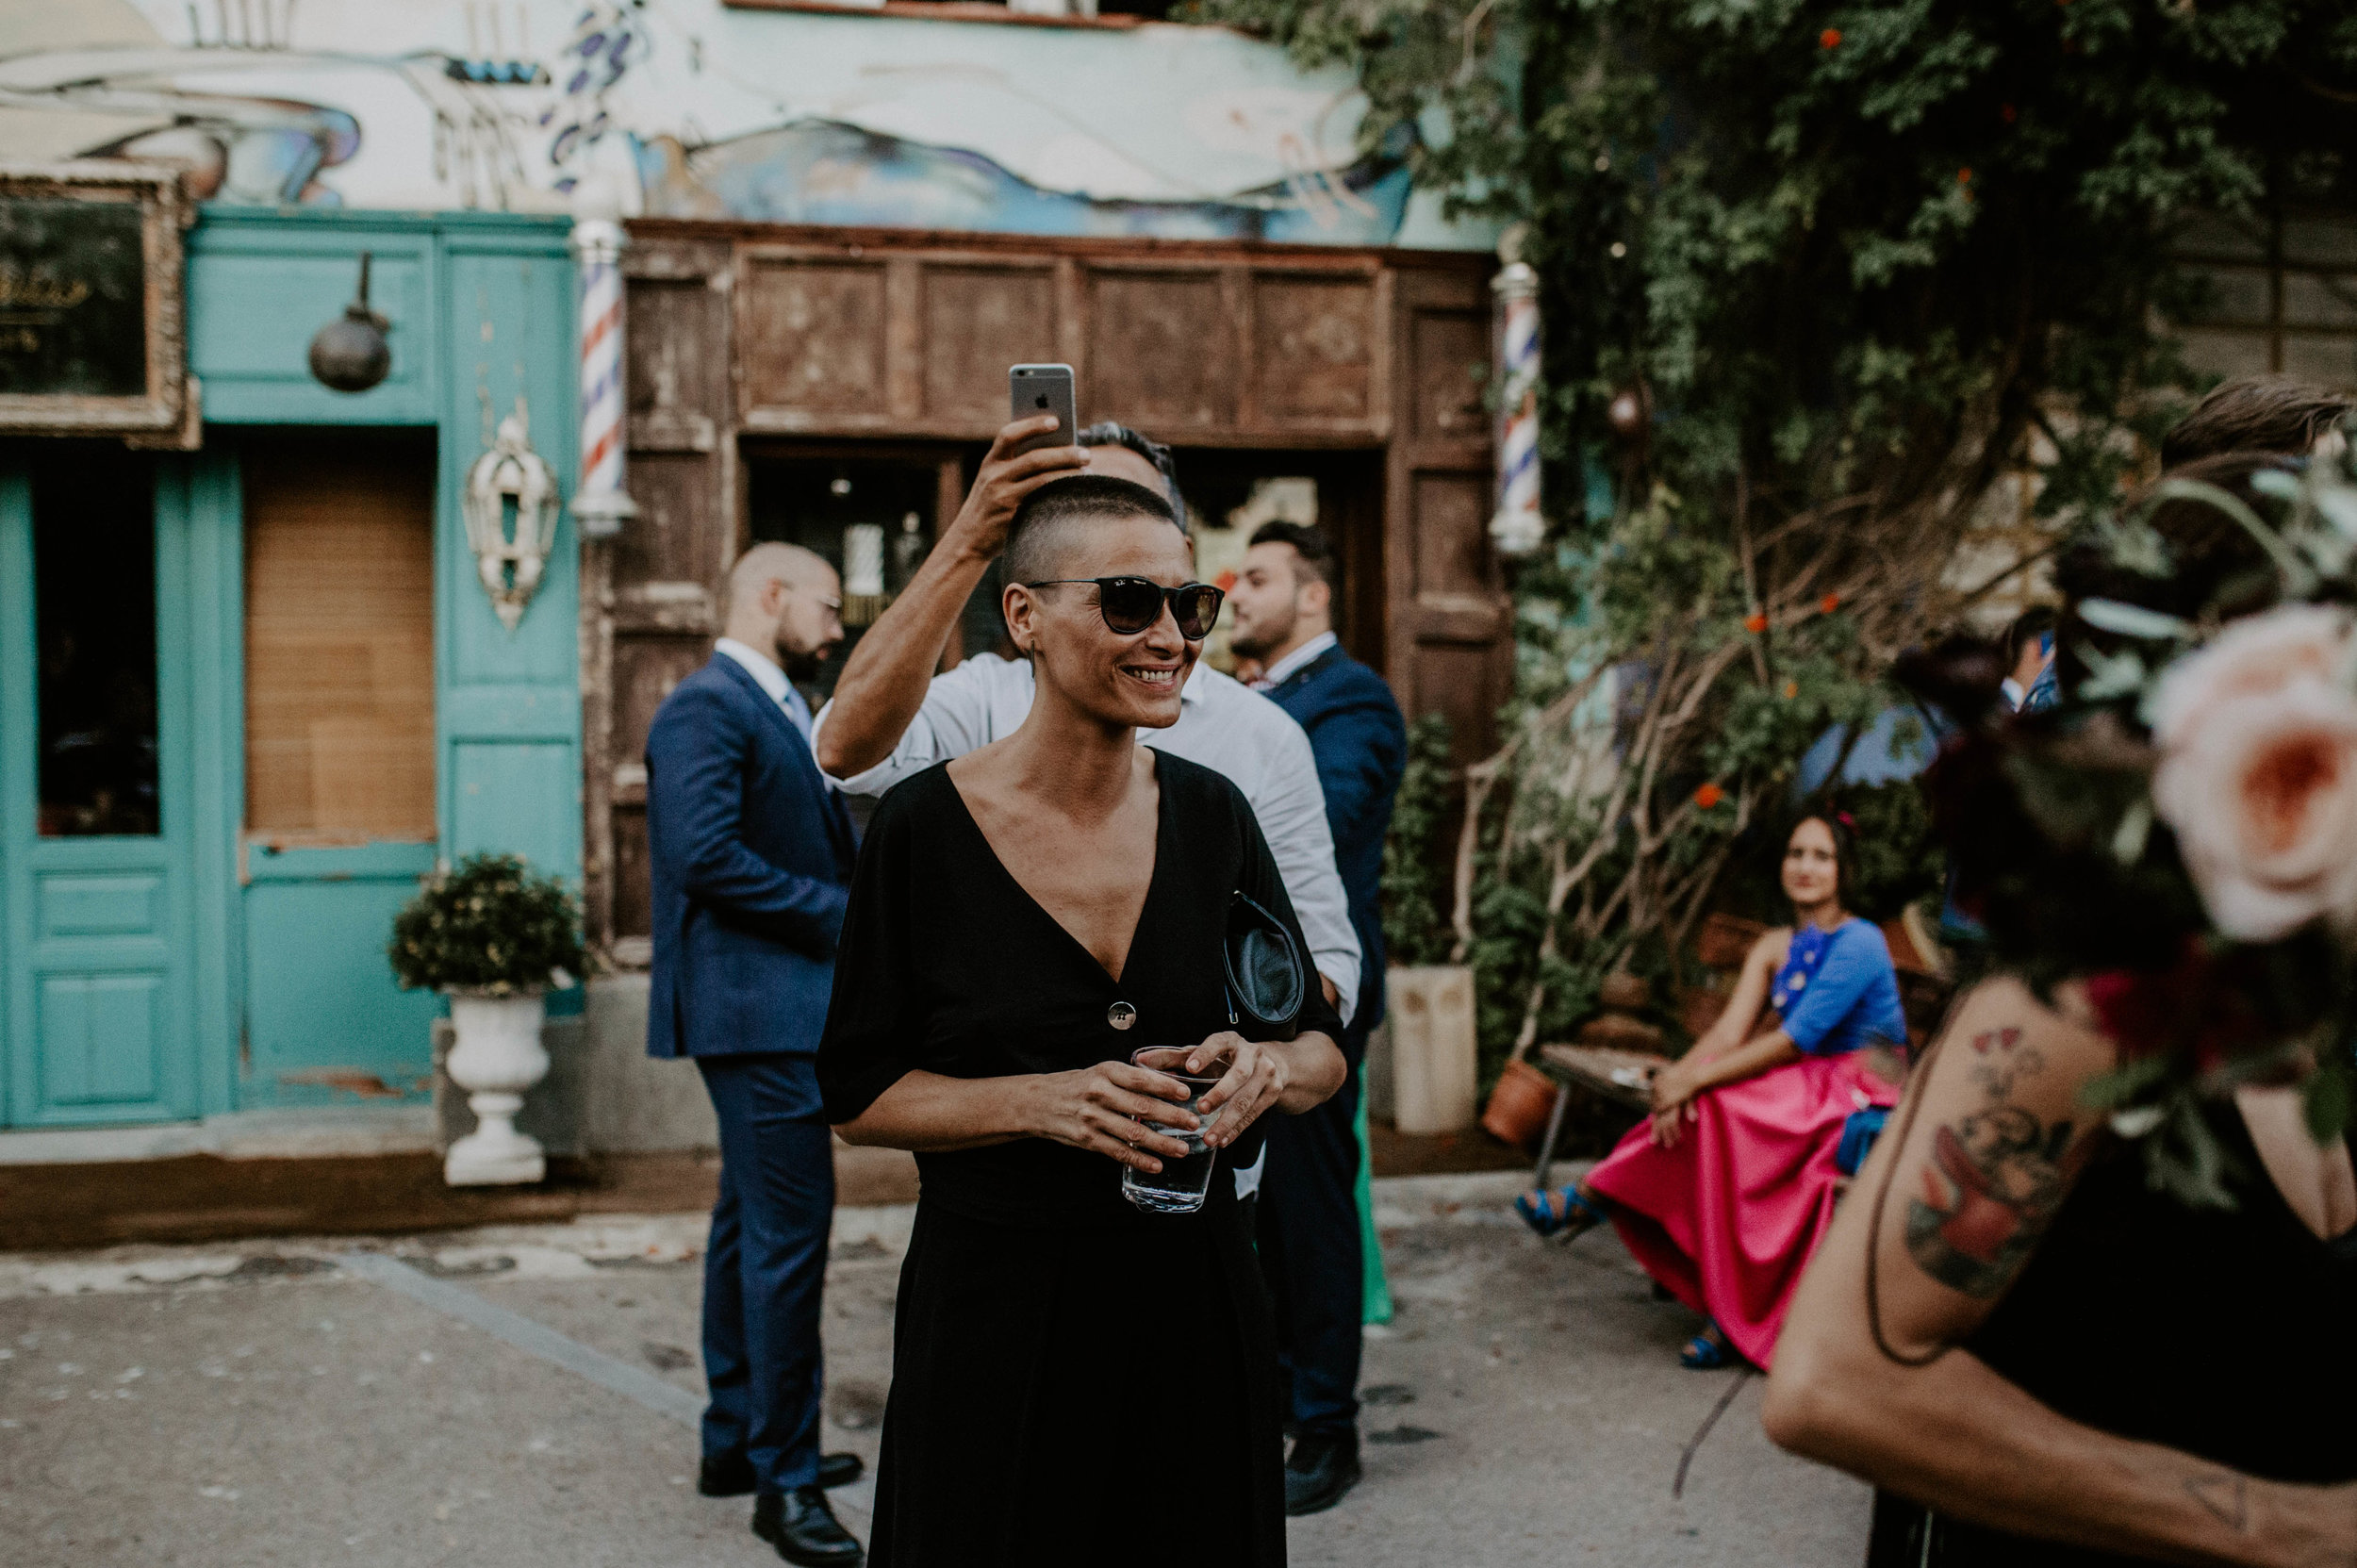 thenortherngirlphotography_bodasindustriales_bodasdiferentes_weddingphotographer_spanishphotographer_spanisgweddingphotographer_happyendings_mercantic_elsiglomercantic_antichrist_love_neon_weddingtattoo_CYNTHIAMANOLO-531.jpg